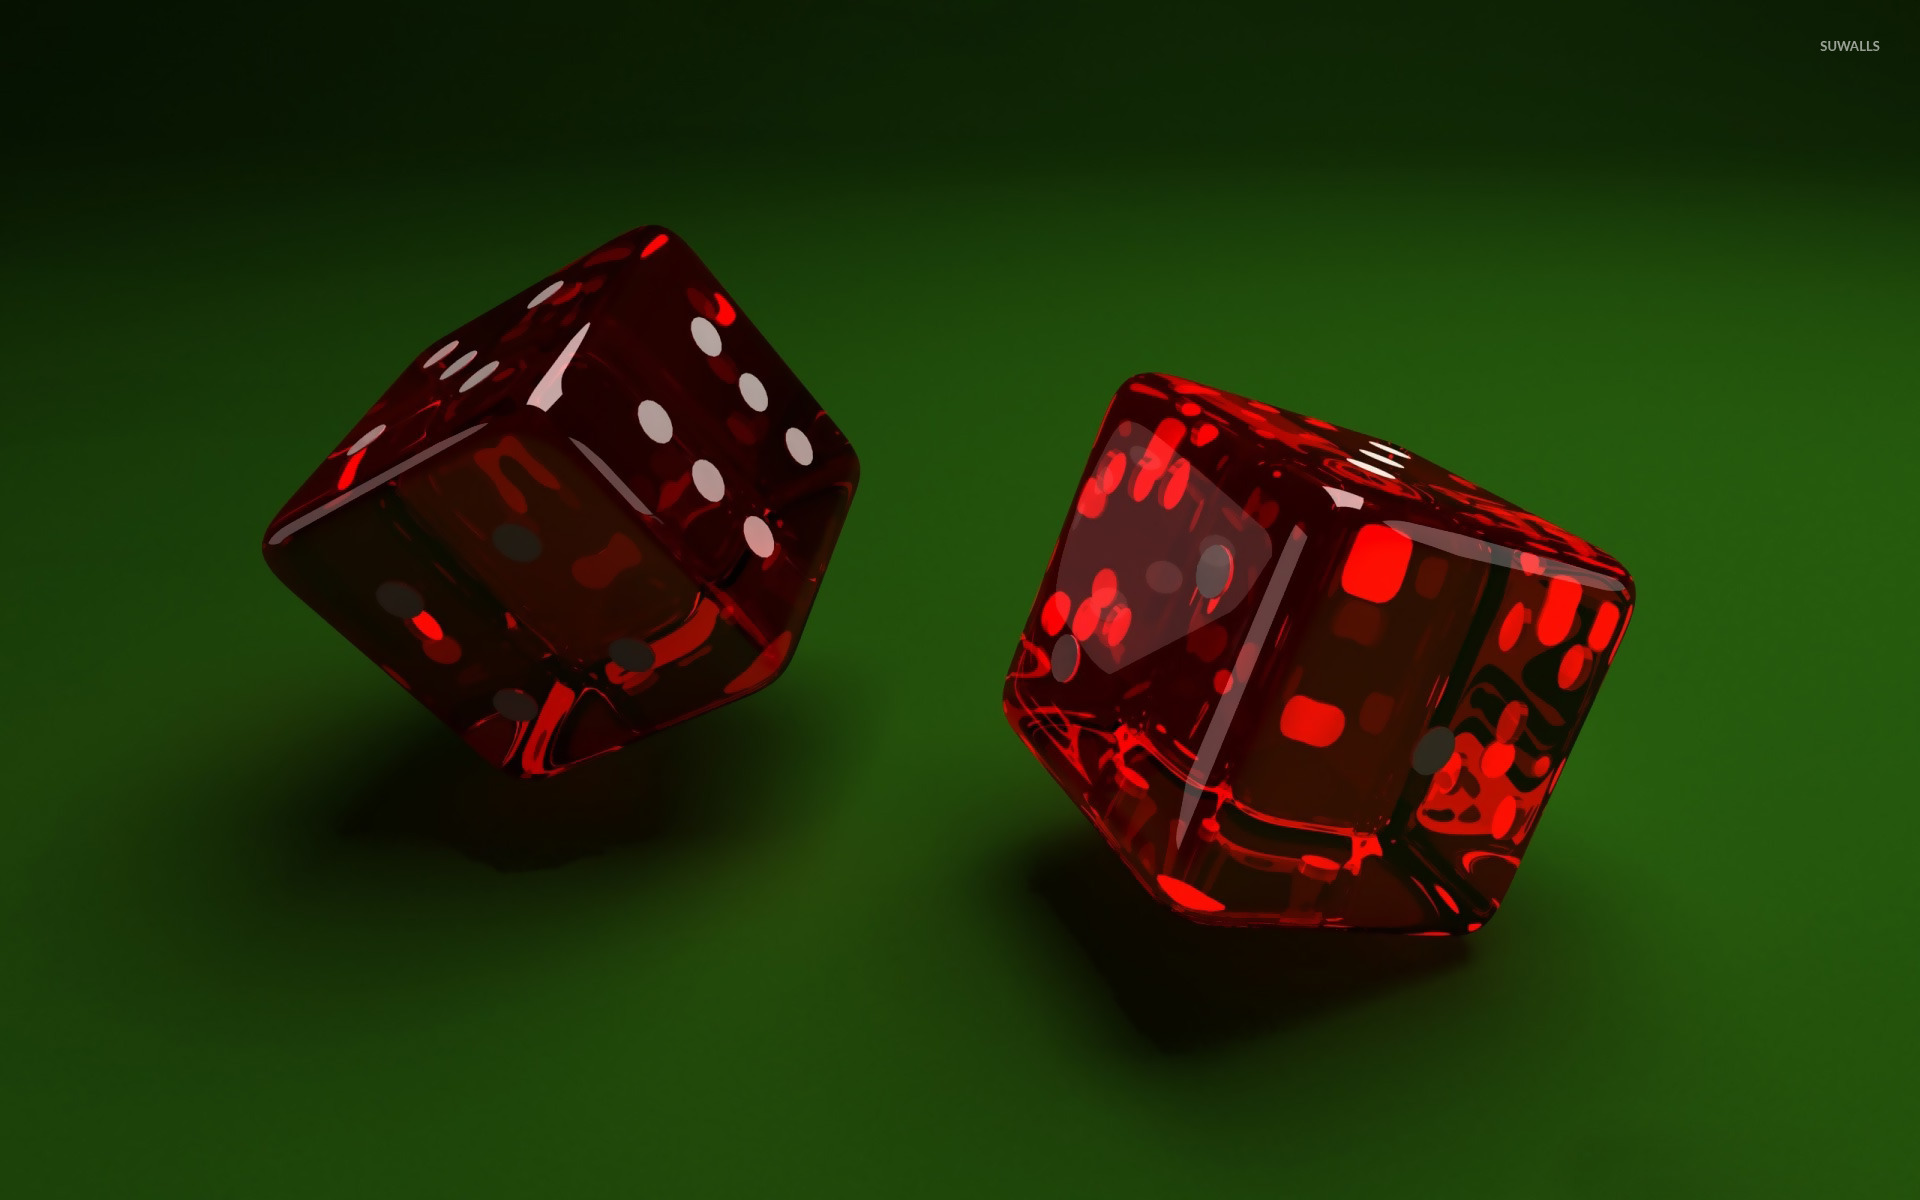 dice 2 wallpaper 3d wallpapers 11856